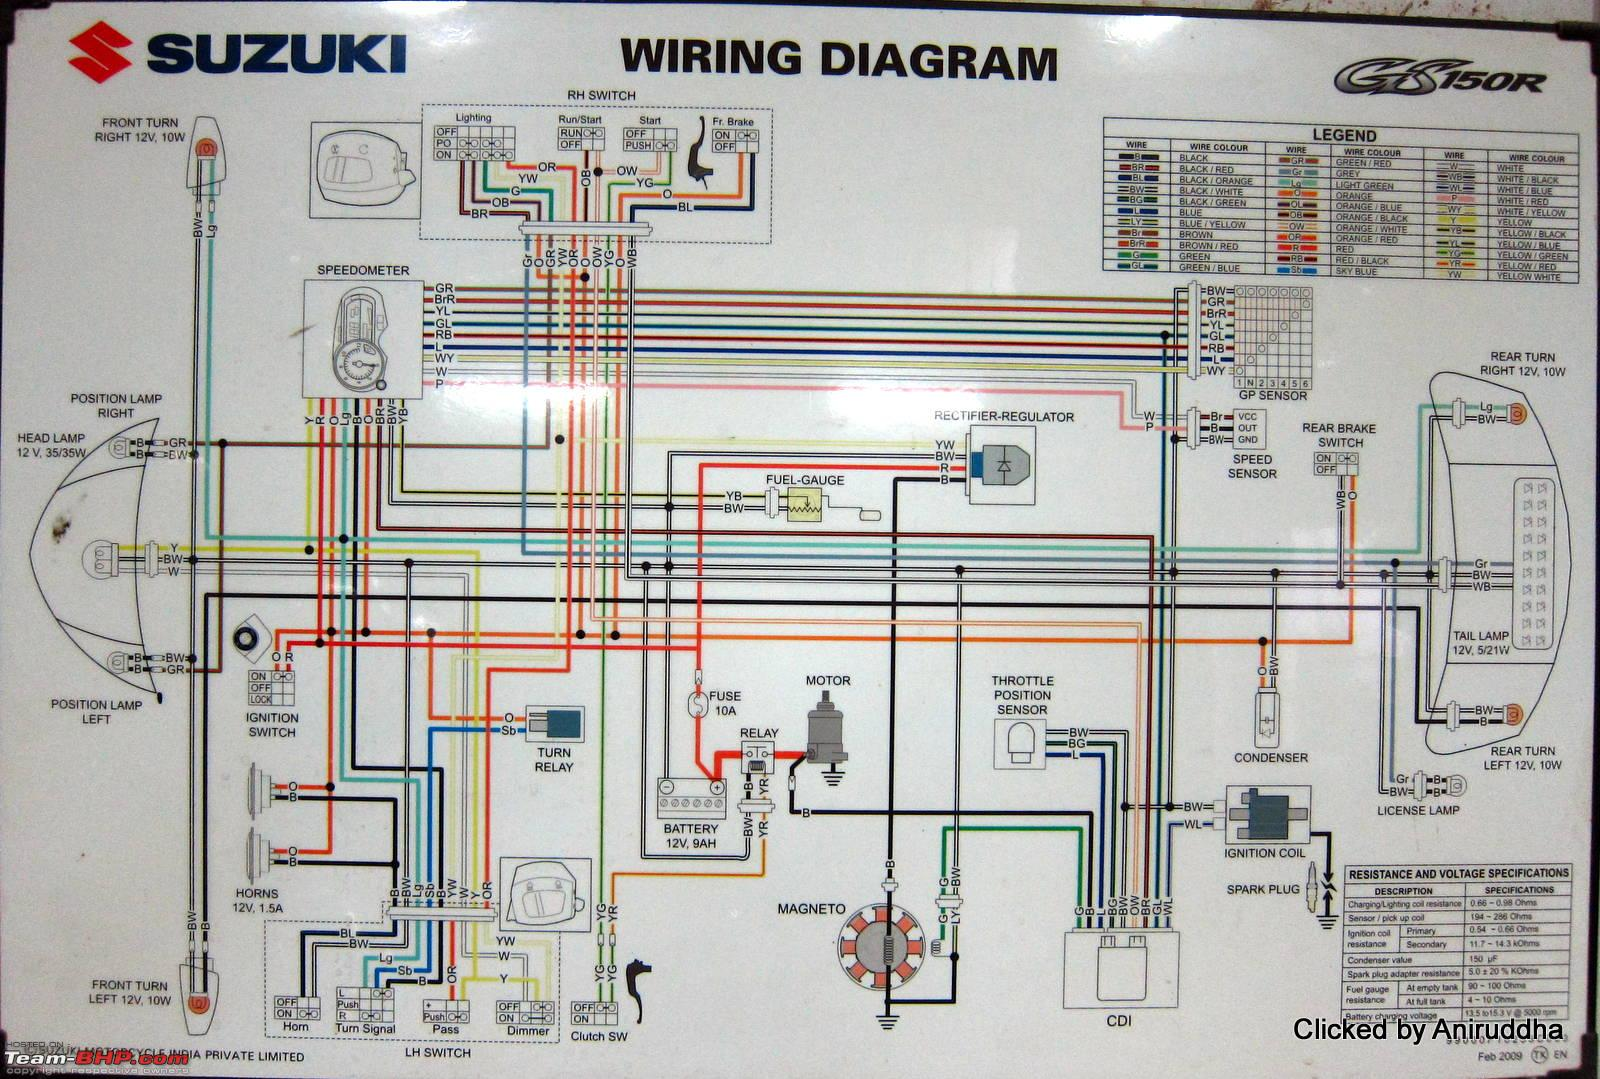 Wiring diagrams of Indian two-wheelers - Team-BHP